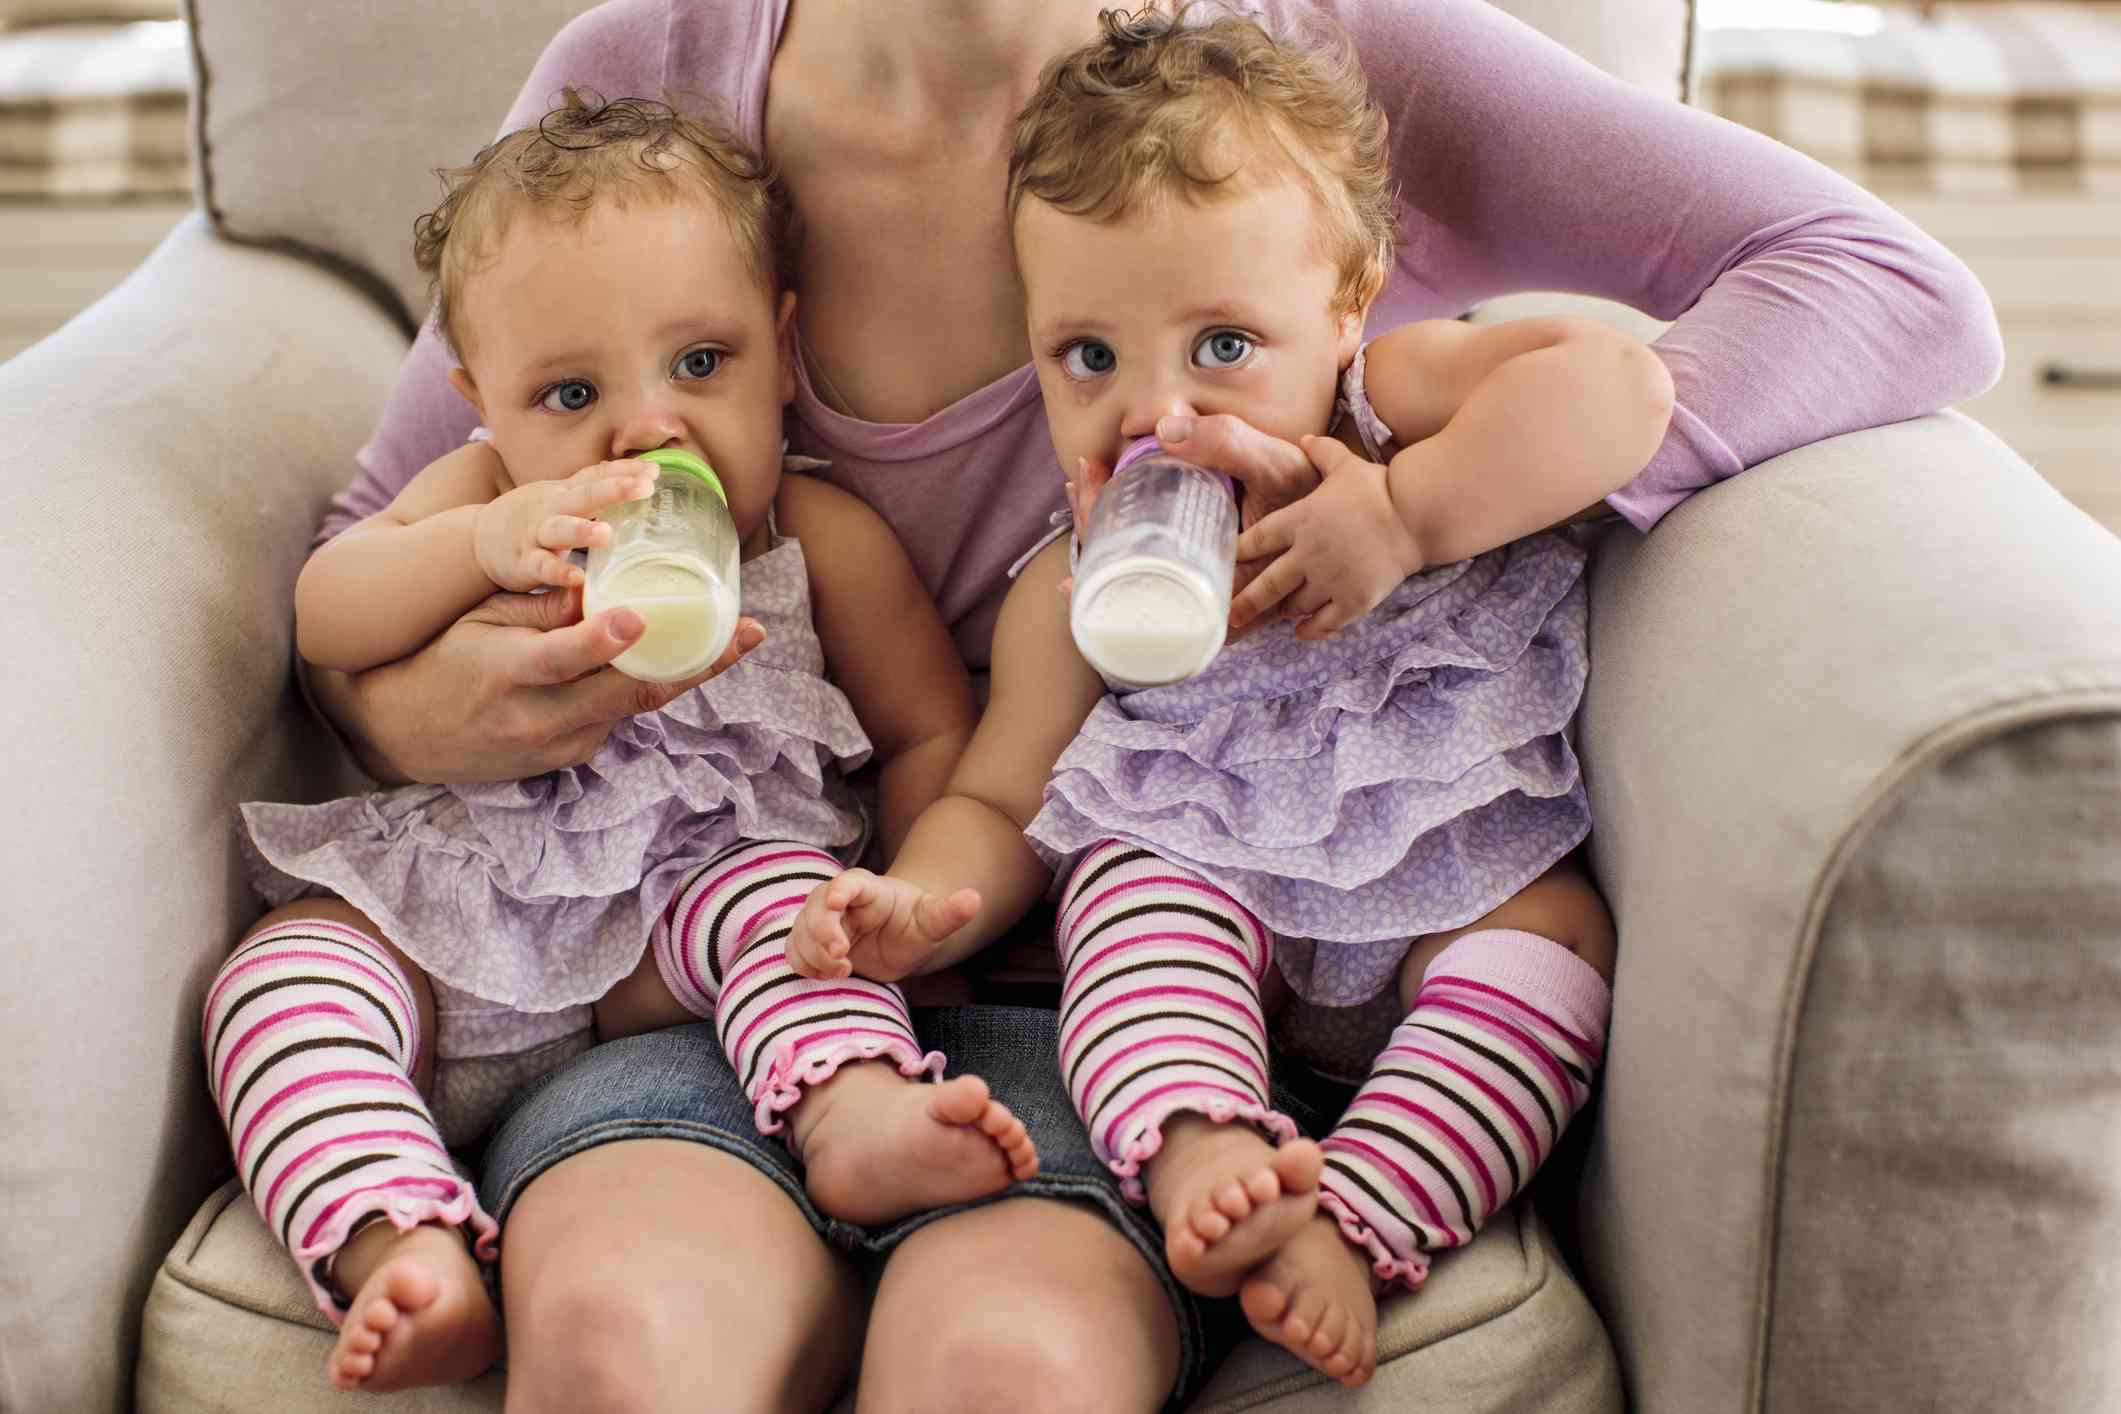 Twin babies in matching outfits